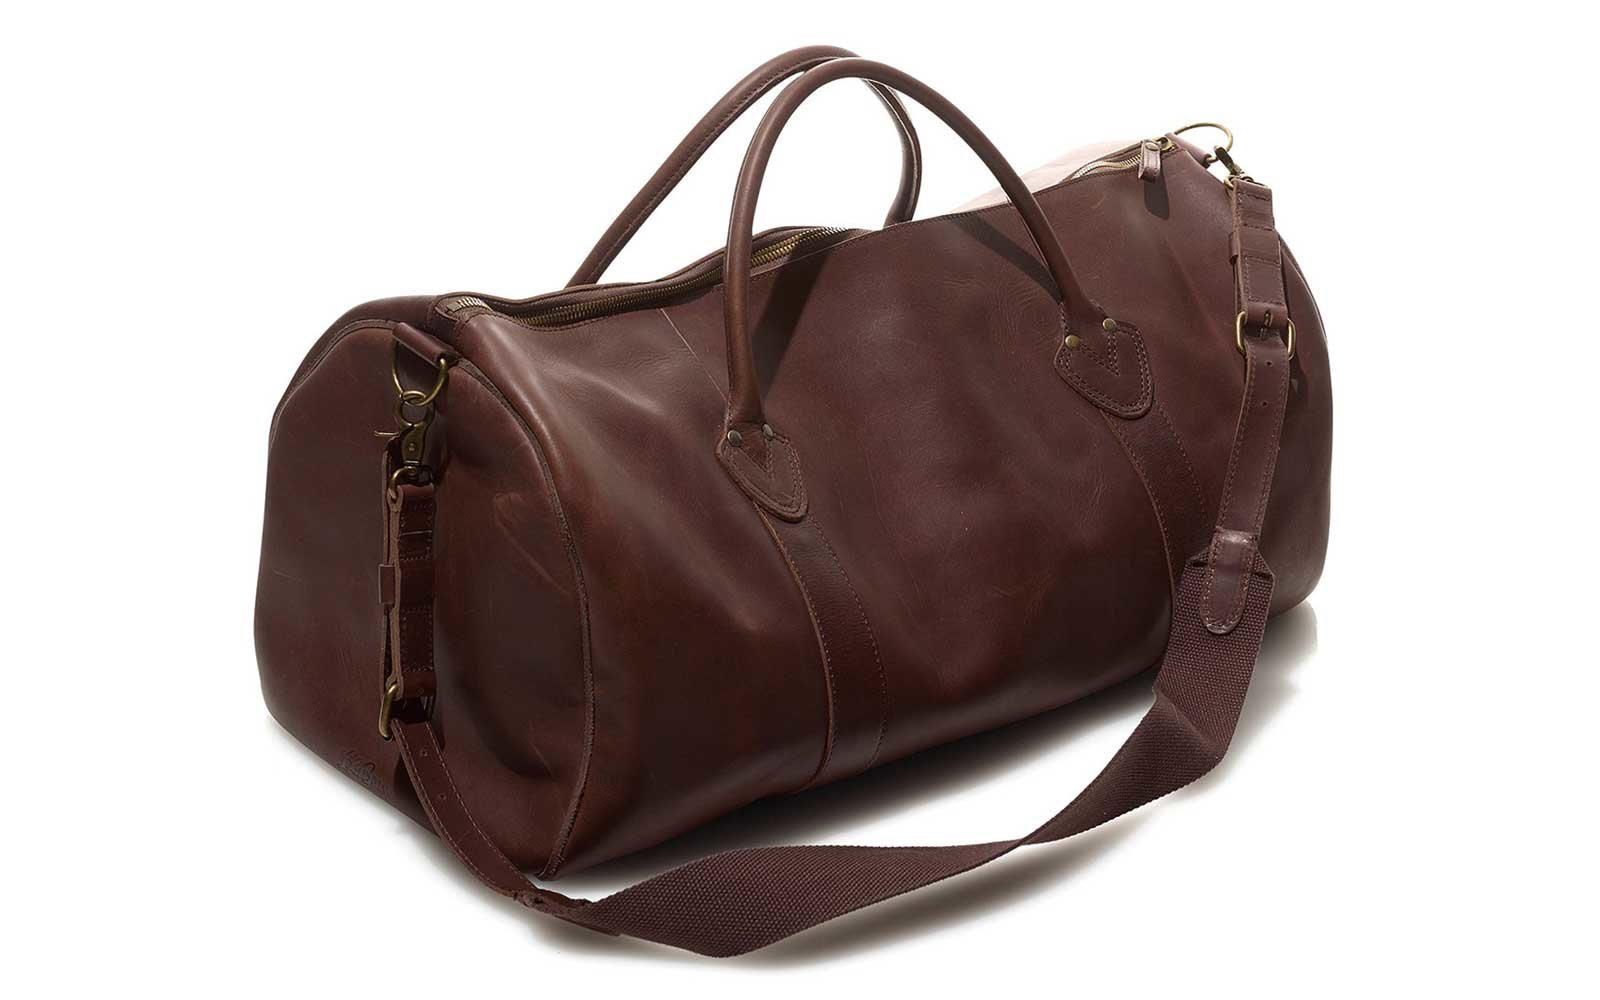 367843eeda L.L.Bean Signature Leather Duffel. LL Bean Duffel Bag for Travel